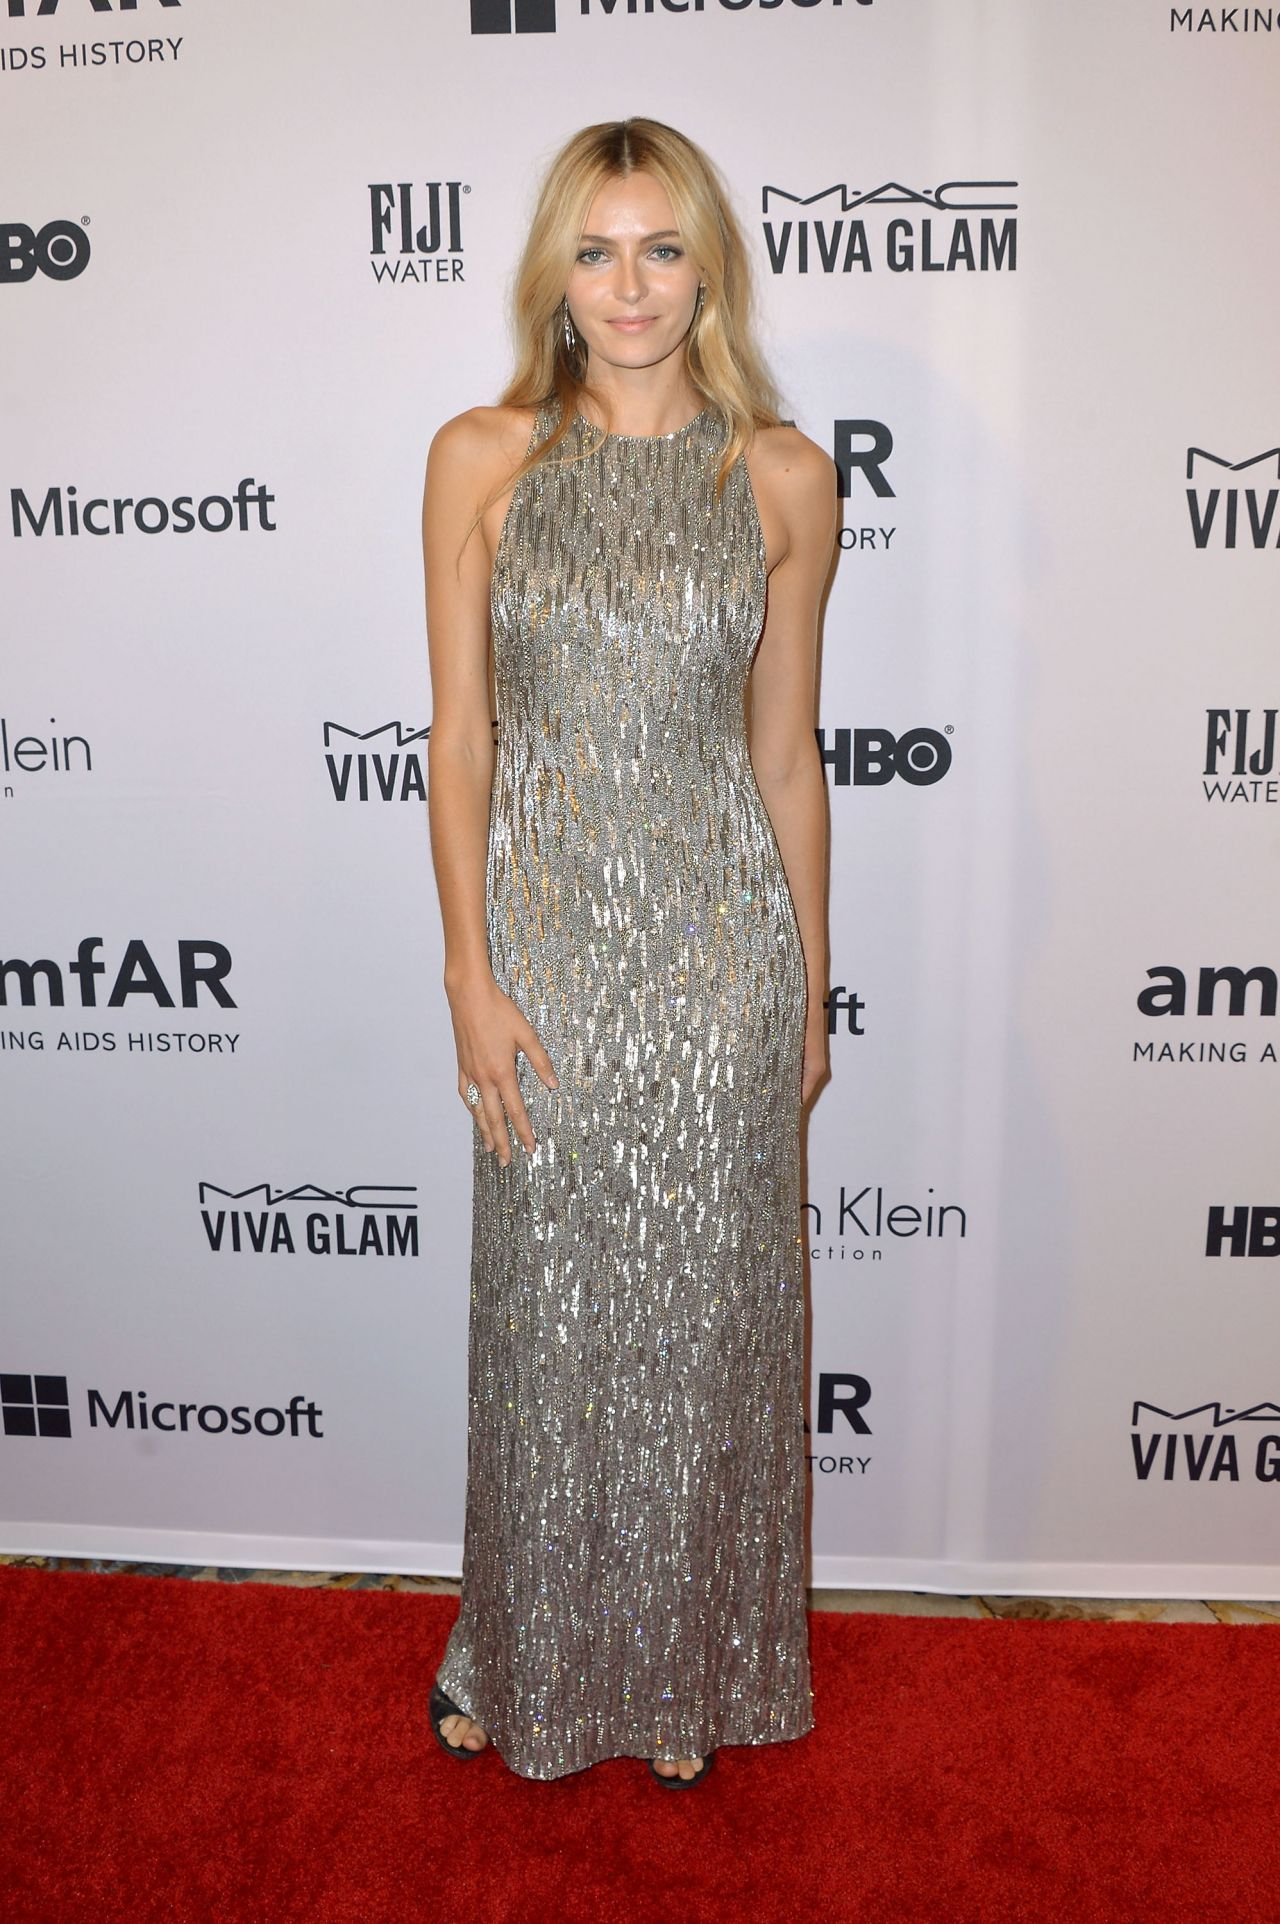 Valentina Zelyaeva at amfAR Inspiration Gala New York - June 2014